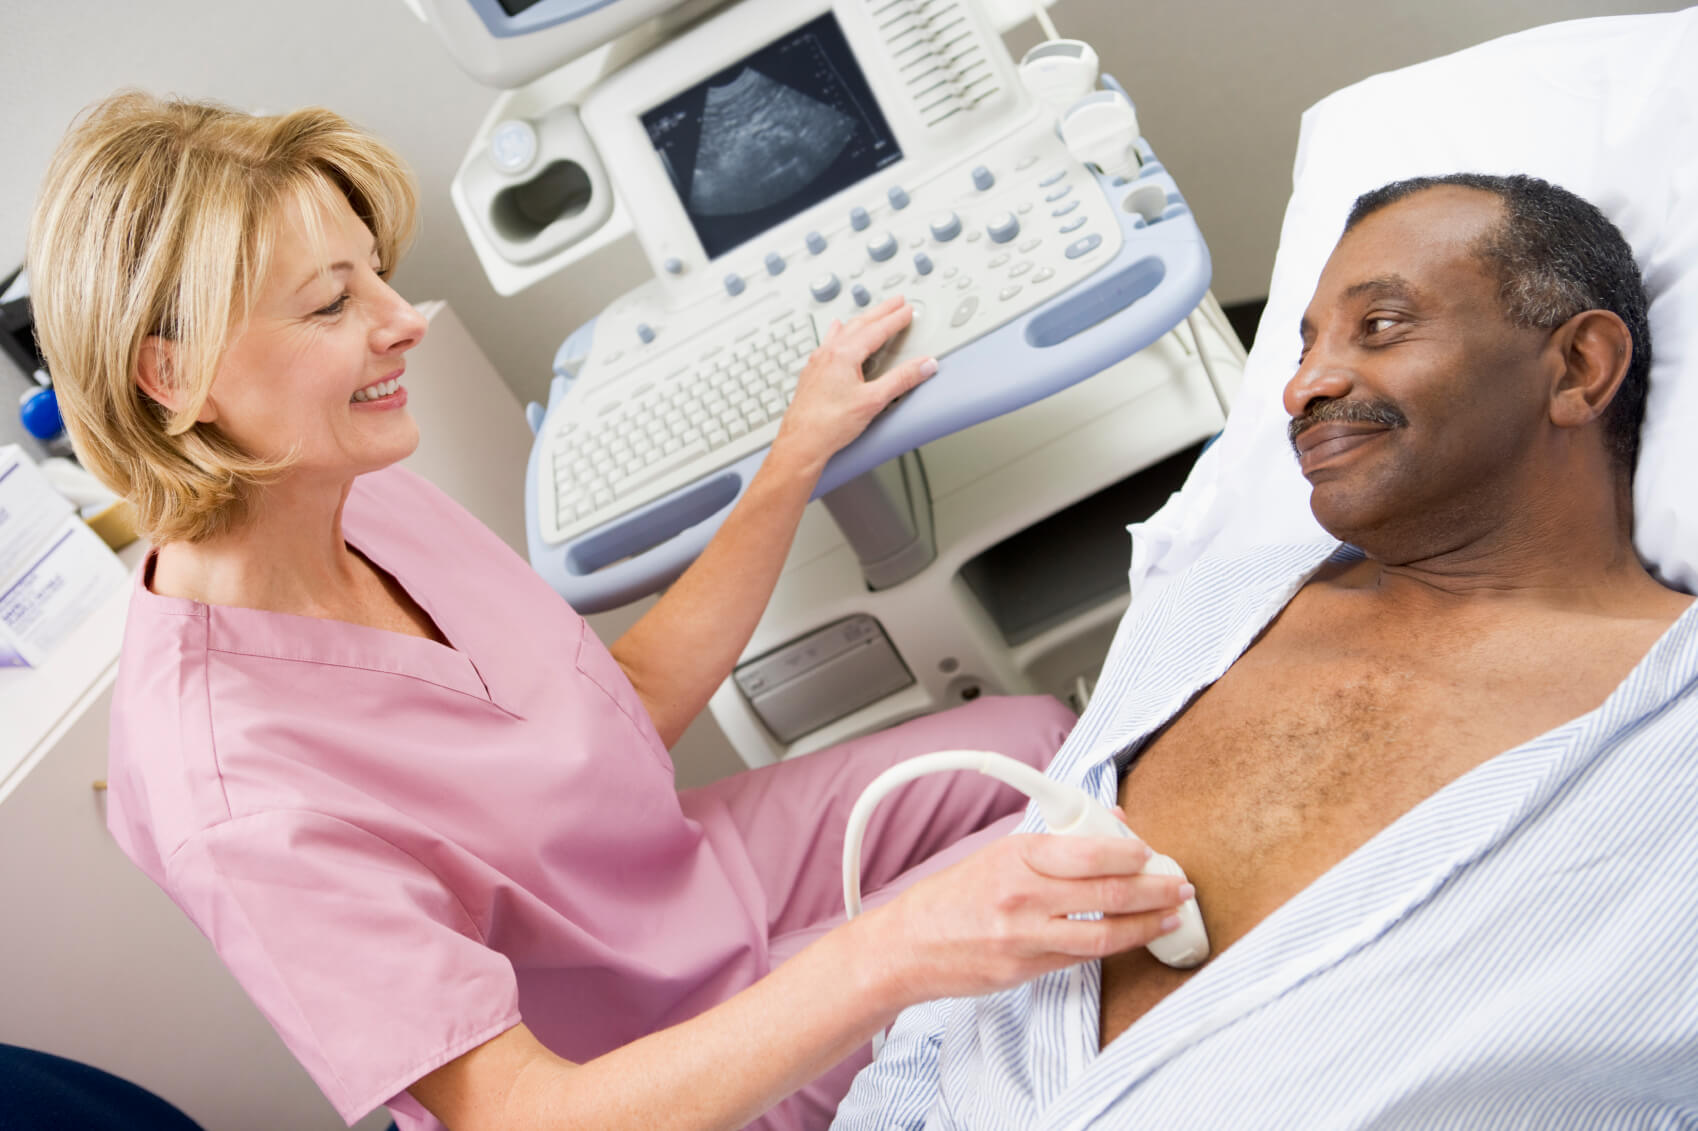 Radiology technologist preparing patient for ultrasound